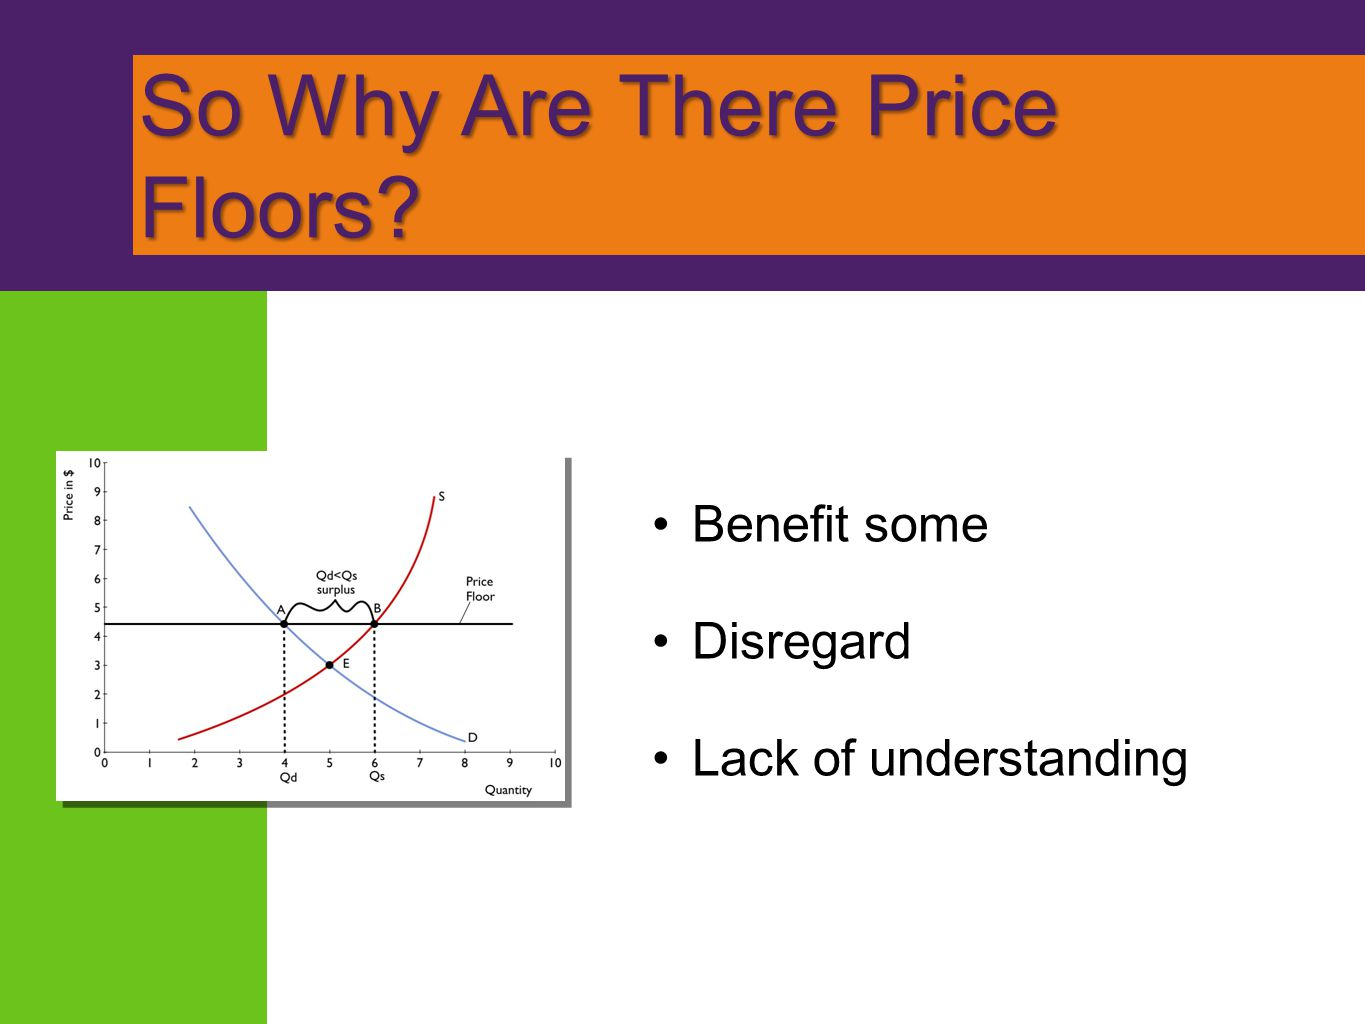 So Why Are There Price Floors